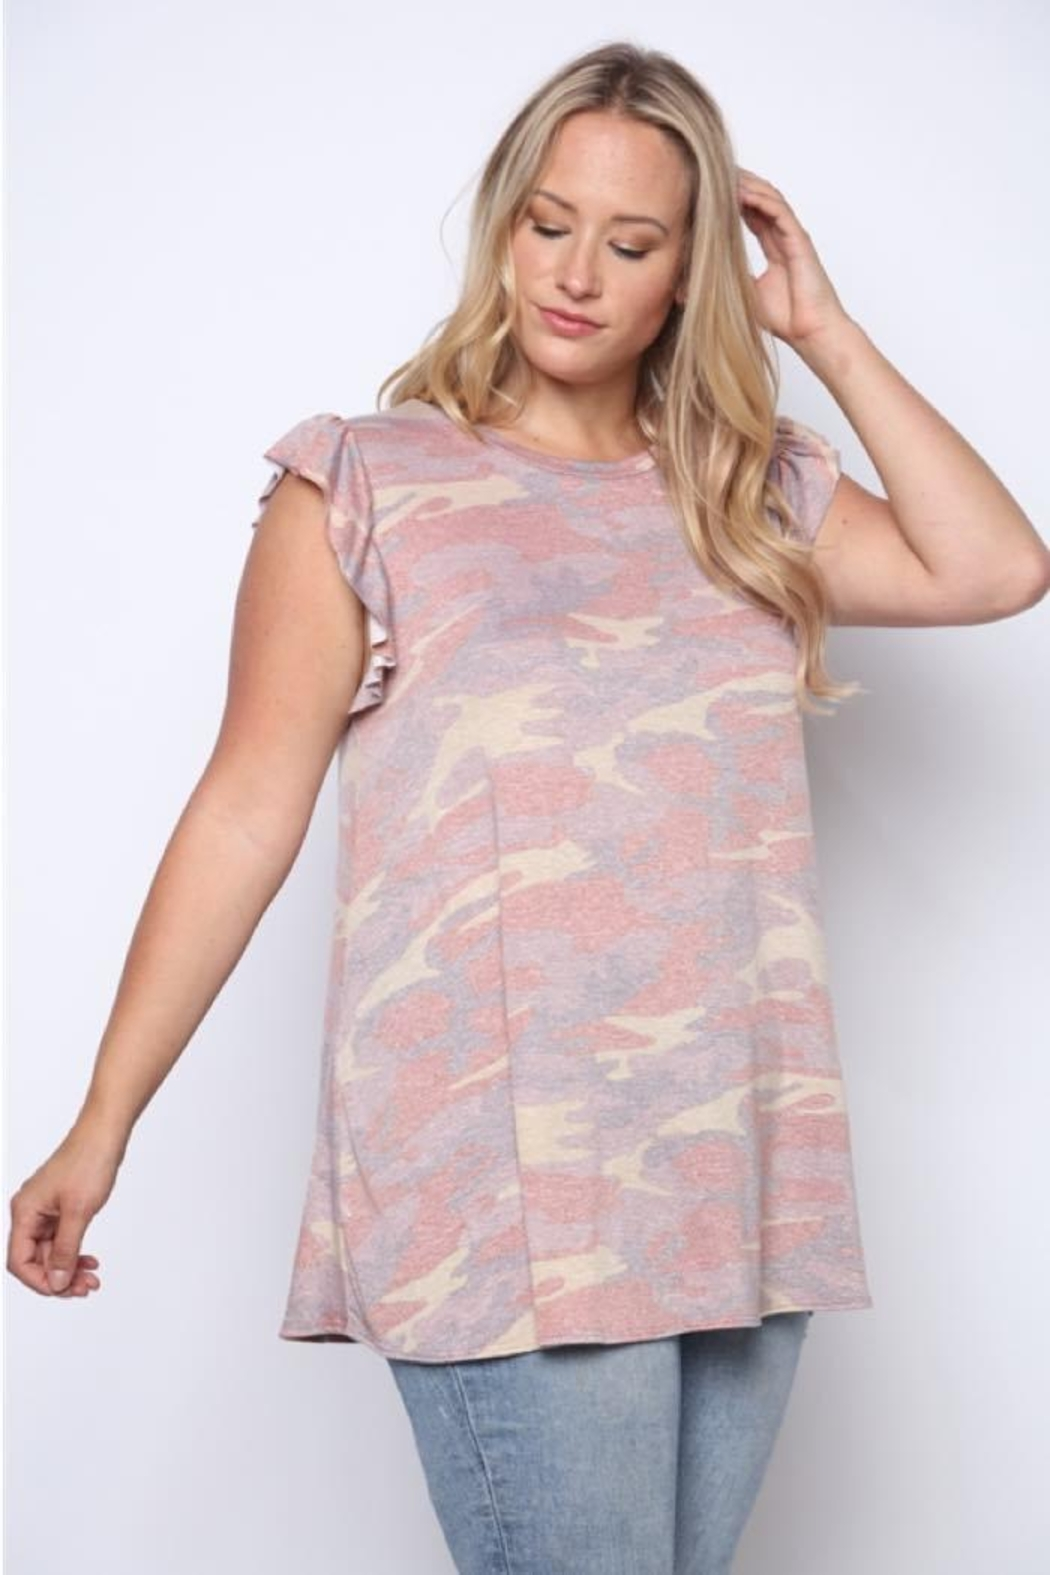 Solo Fashion New York Army Top Pink Plus Size - Main Image